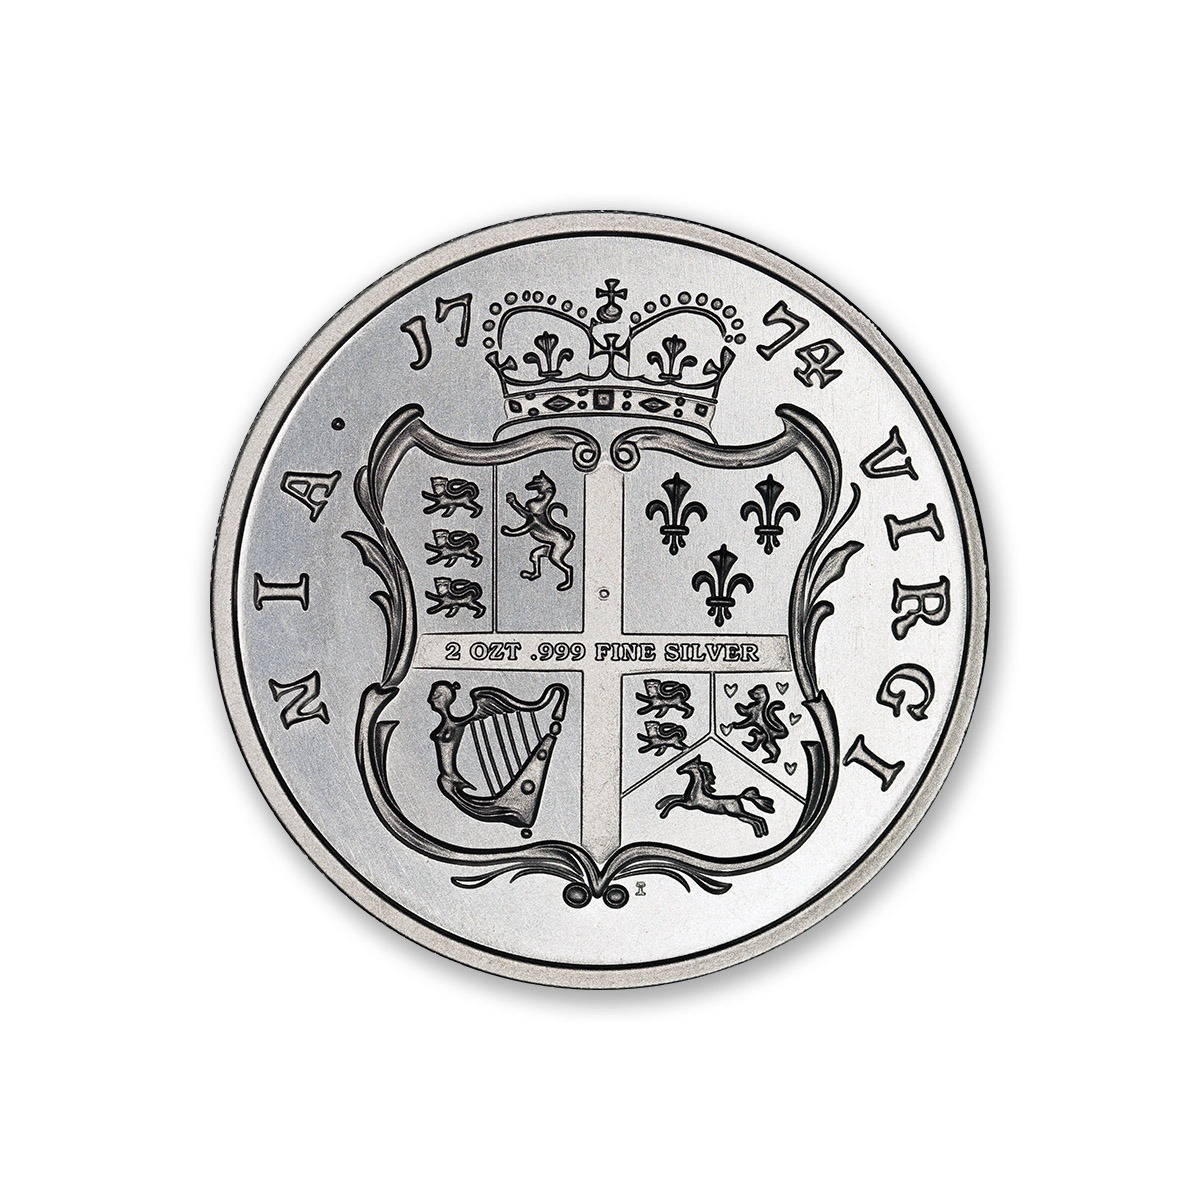 Colonial Tribute Series - The Virginia Shilling - 2 ozt. 39mm .999 Fine Silver Art Medal (6mm Thick)